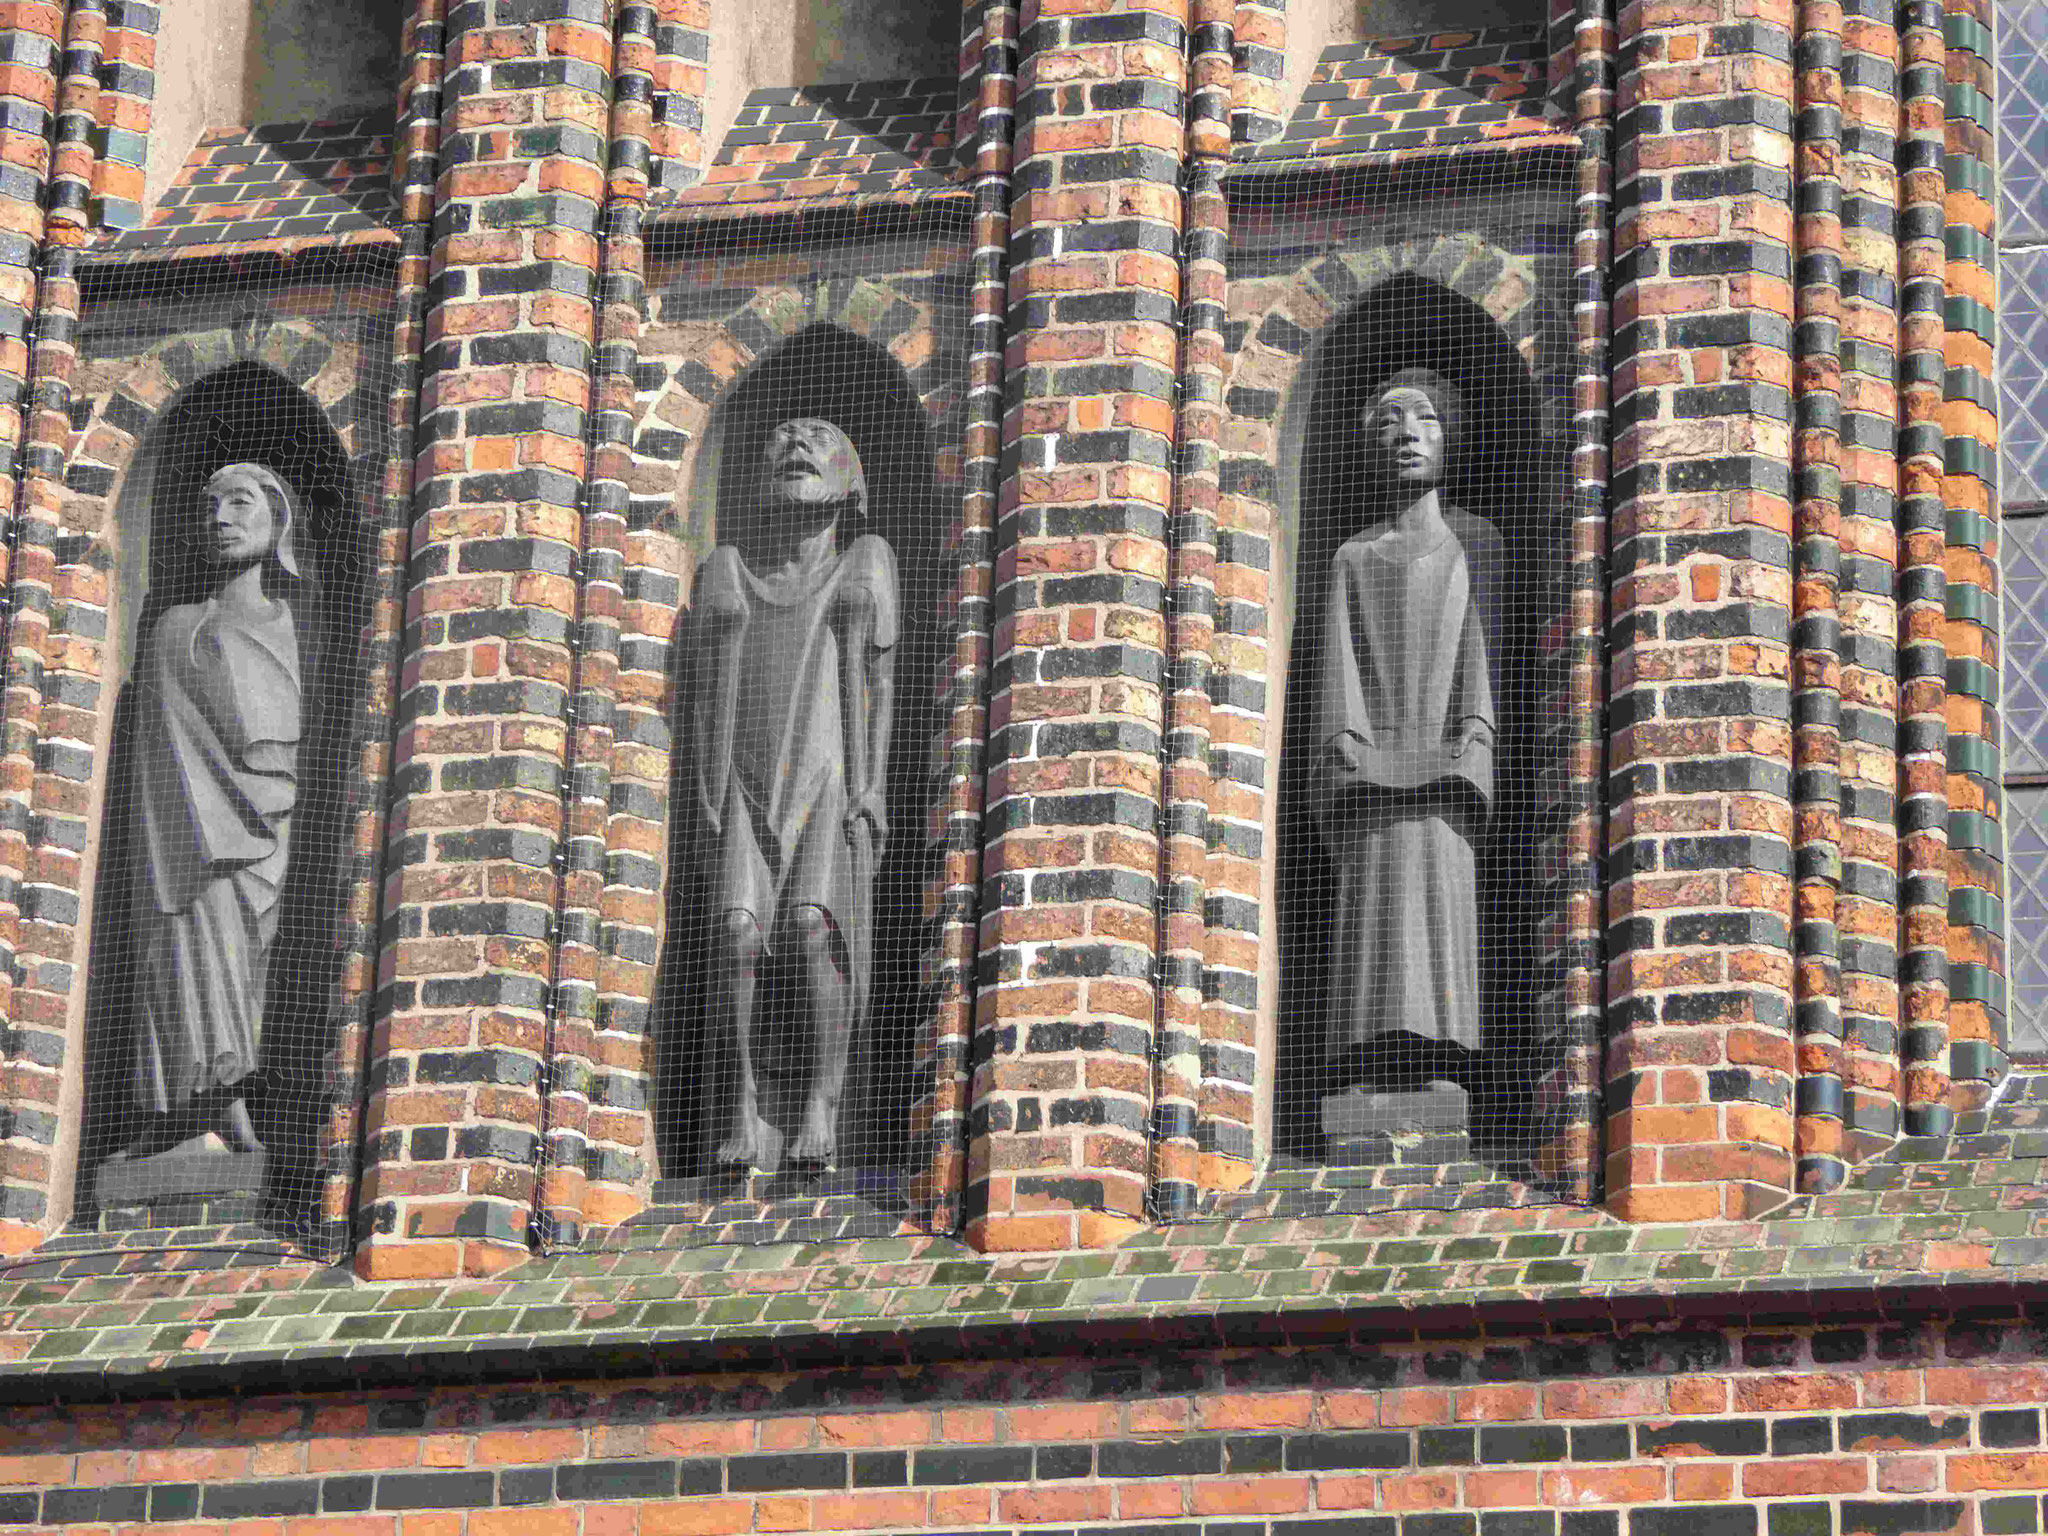 Ernst Barlach, Fries an der Katharinenkirche in Lübeck